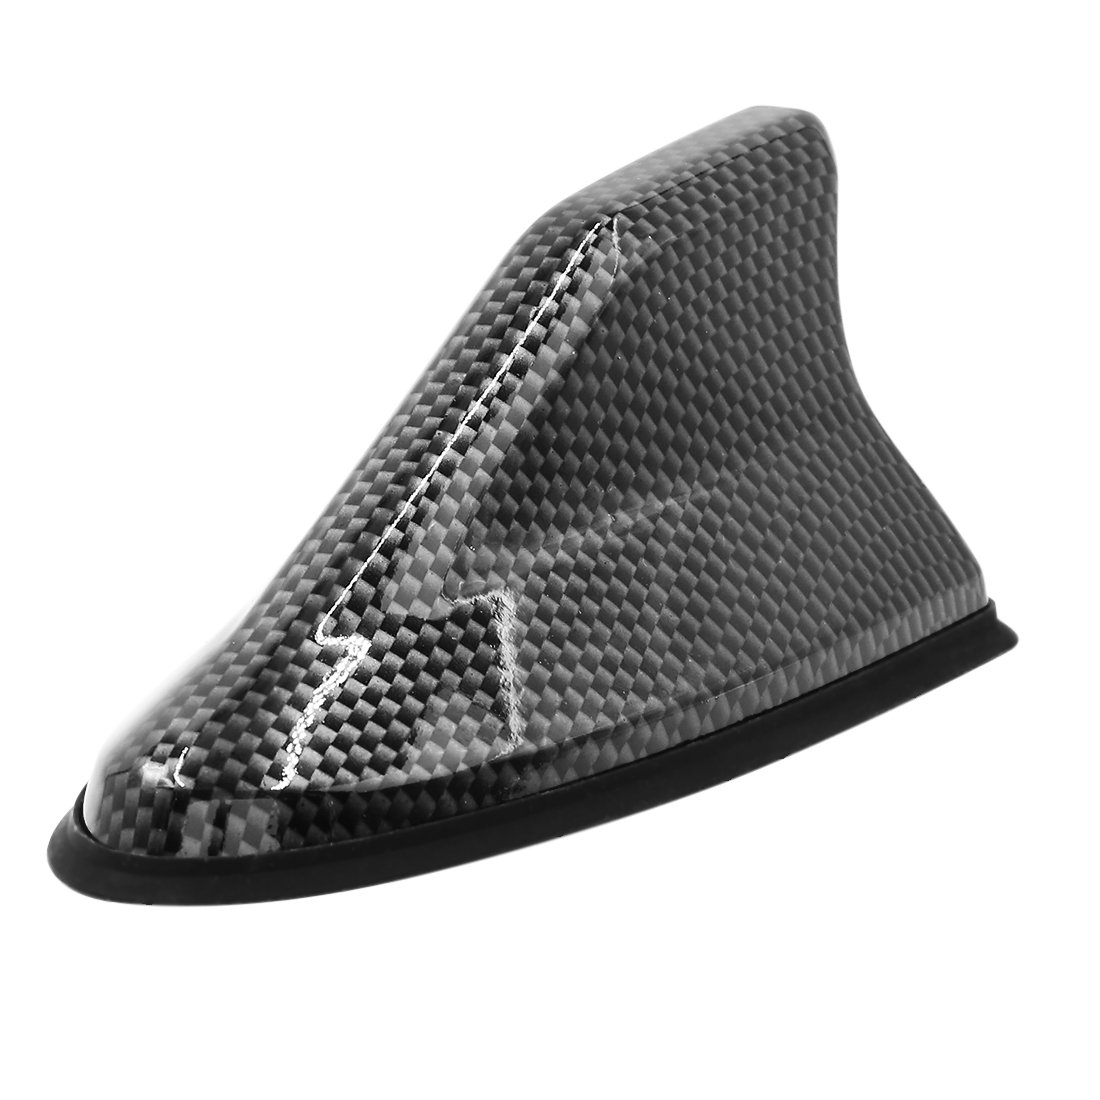 uxcell/® Car Roof Mounted Shark Fin Shaped Antenna Decor Black